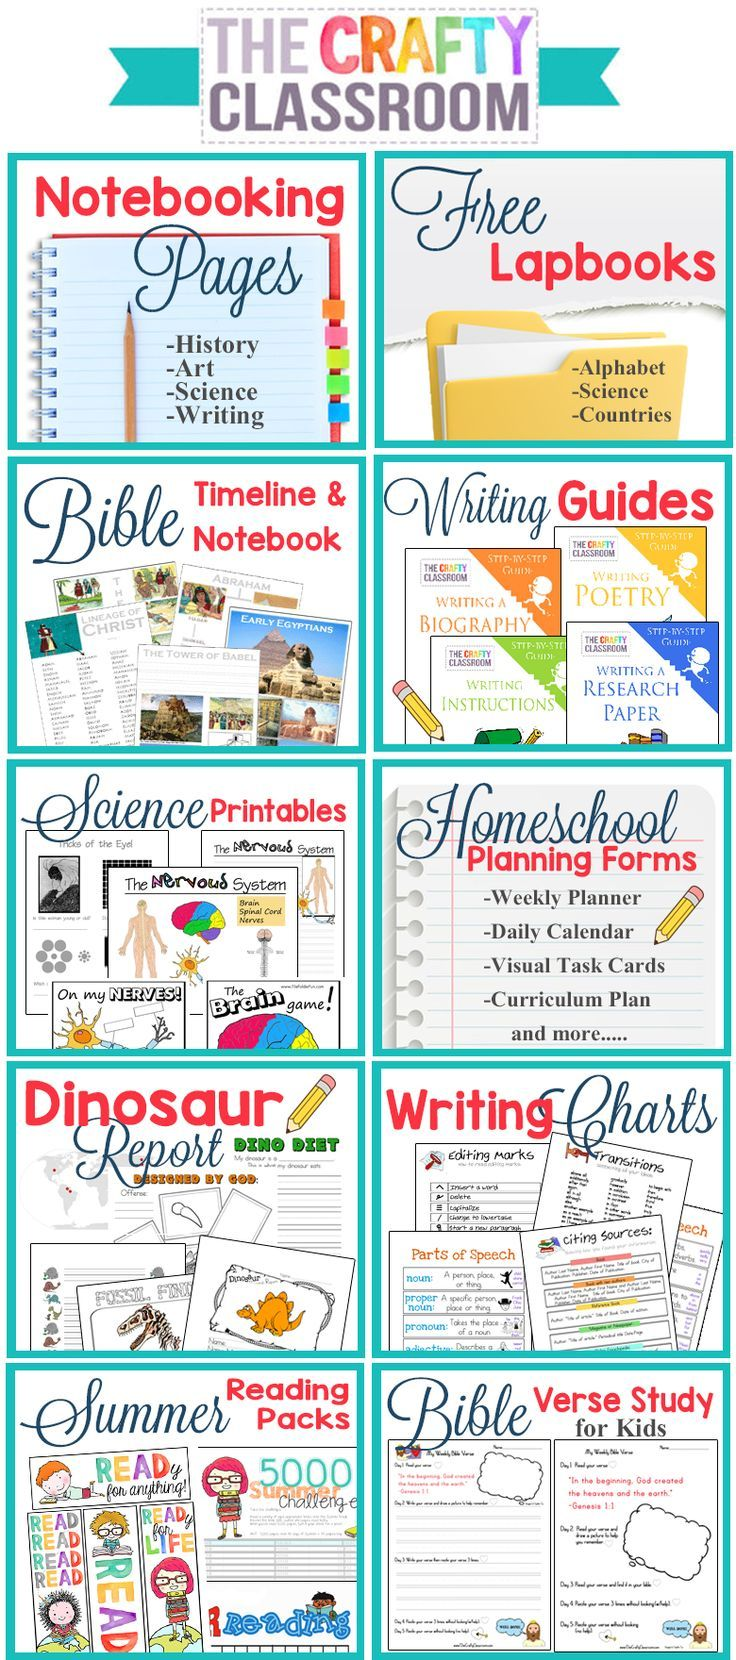 Workbooks homeschooling worksheets for kindergarten : 237 best Writing Guides for Children images on Pinterest ...